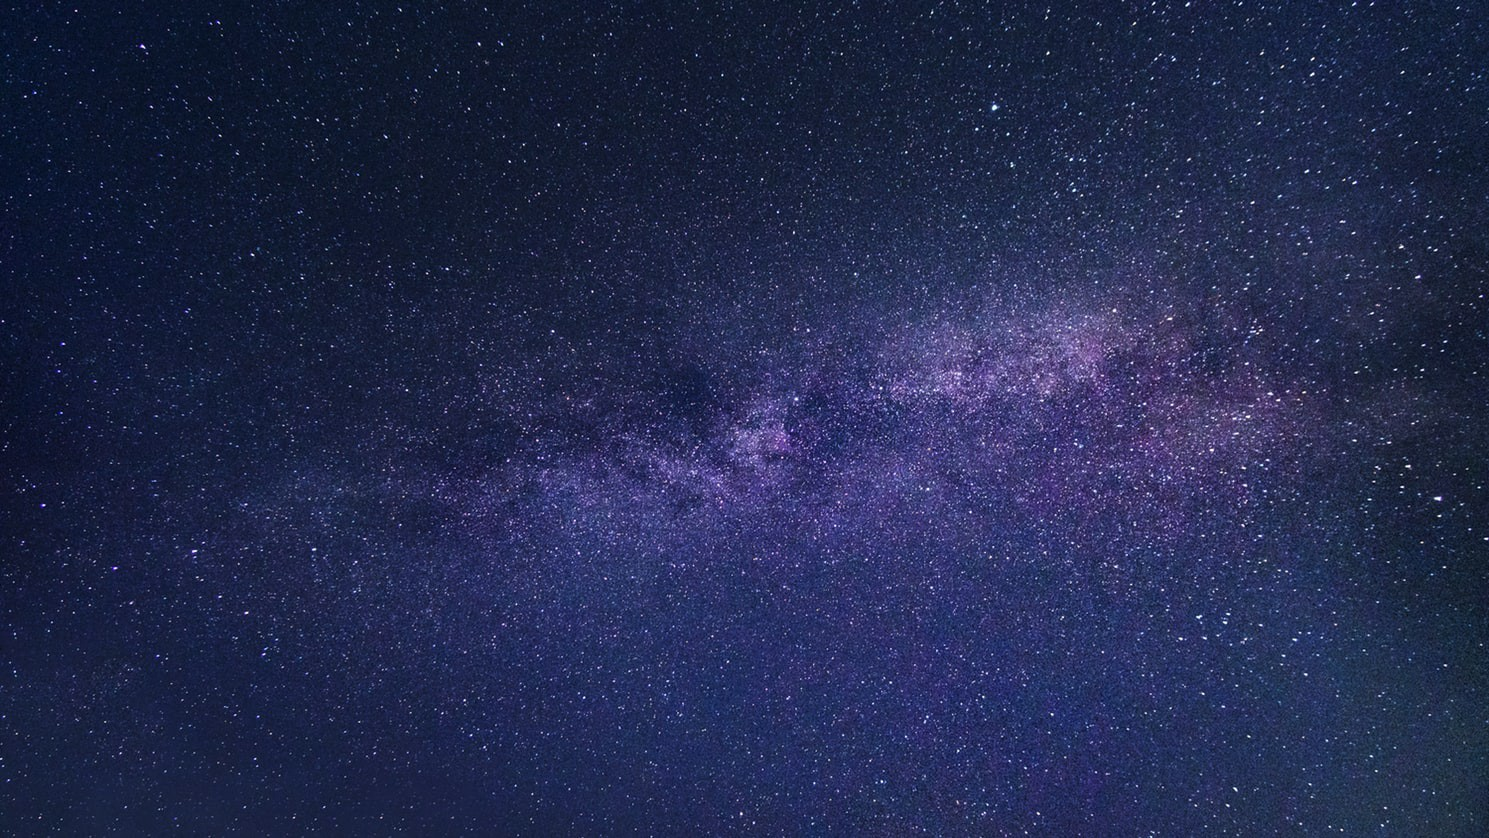 Photo of the Milky Way as seen from Earth in the night sky, in shades of blue and purple